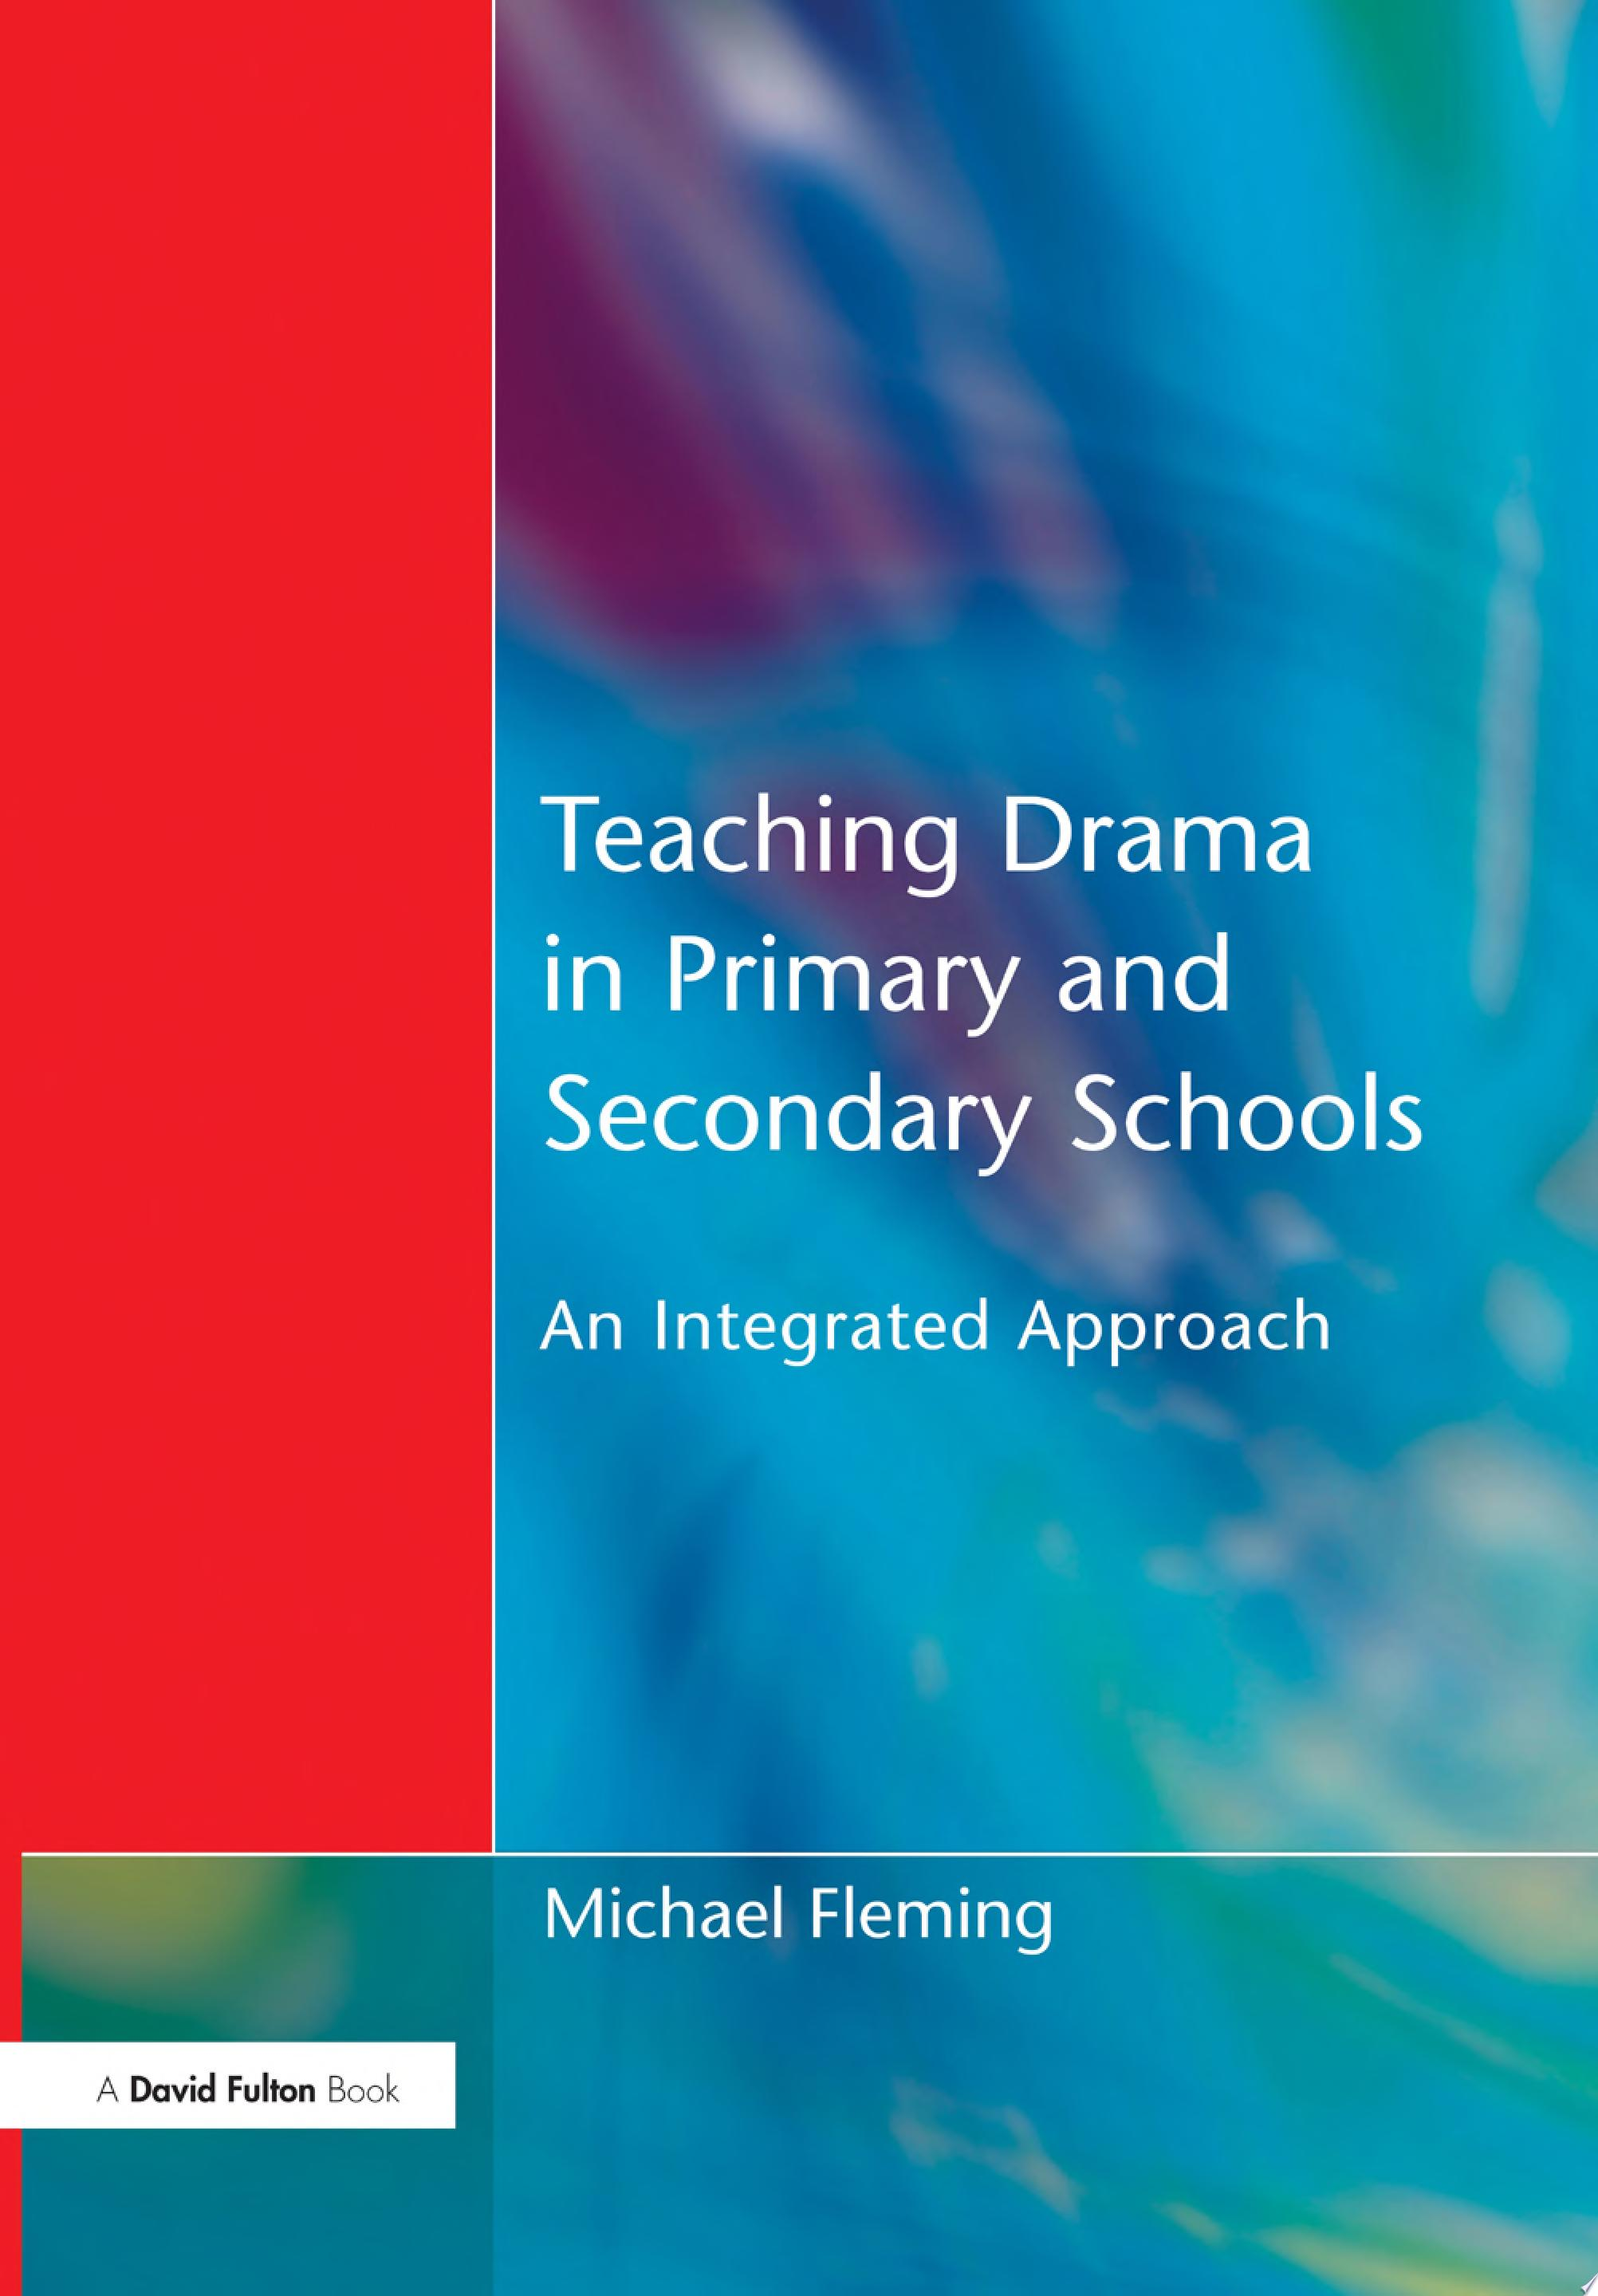 Teaching Drama in Primary and Secondary Schools